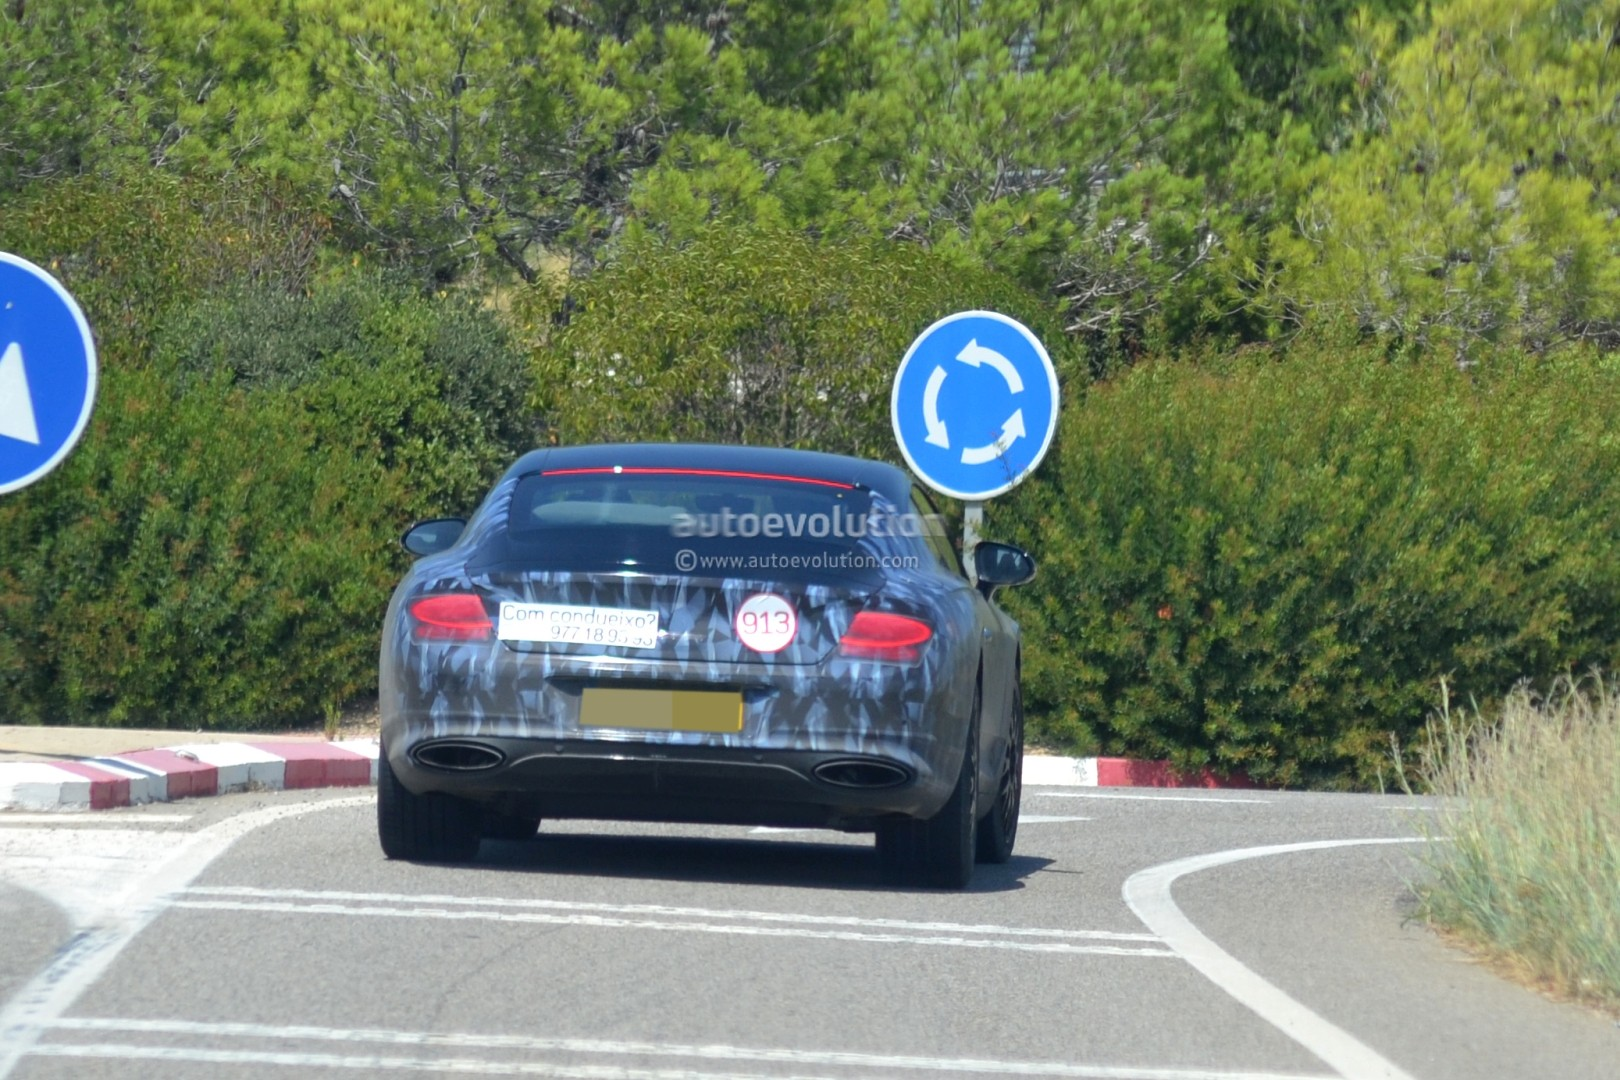 2017 - [Bentley] Continental GT - Page 3 2018-bentley-continental-gt-prototype-reveals-production-intakes-larger-grille_6